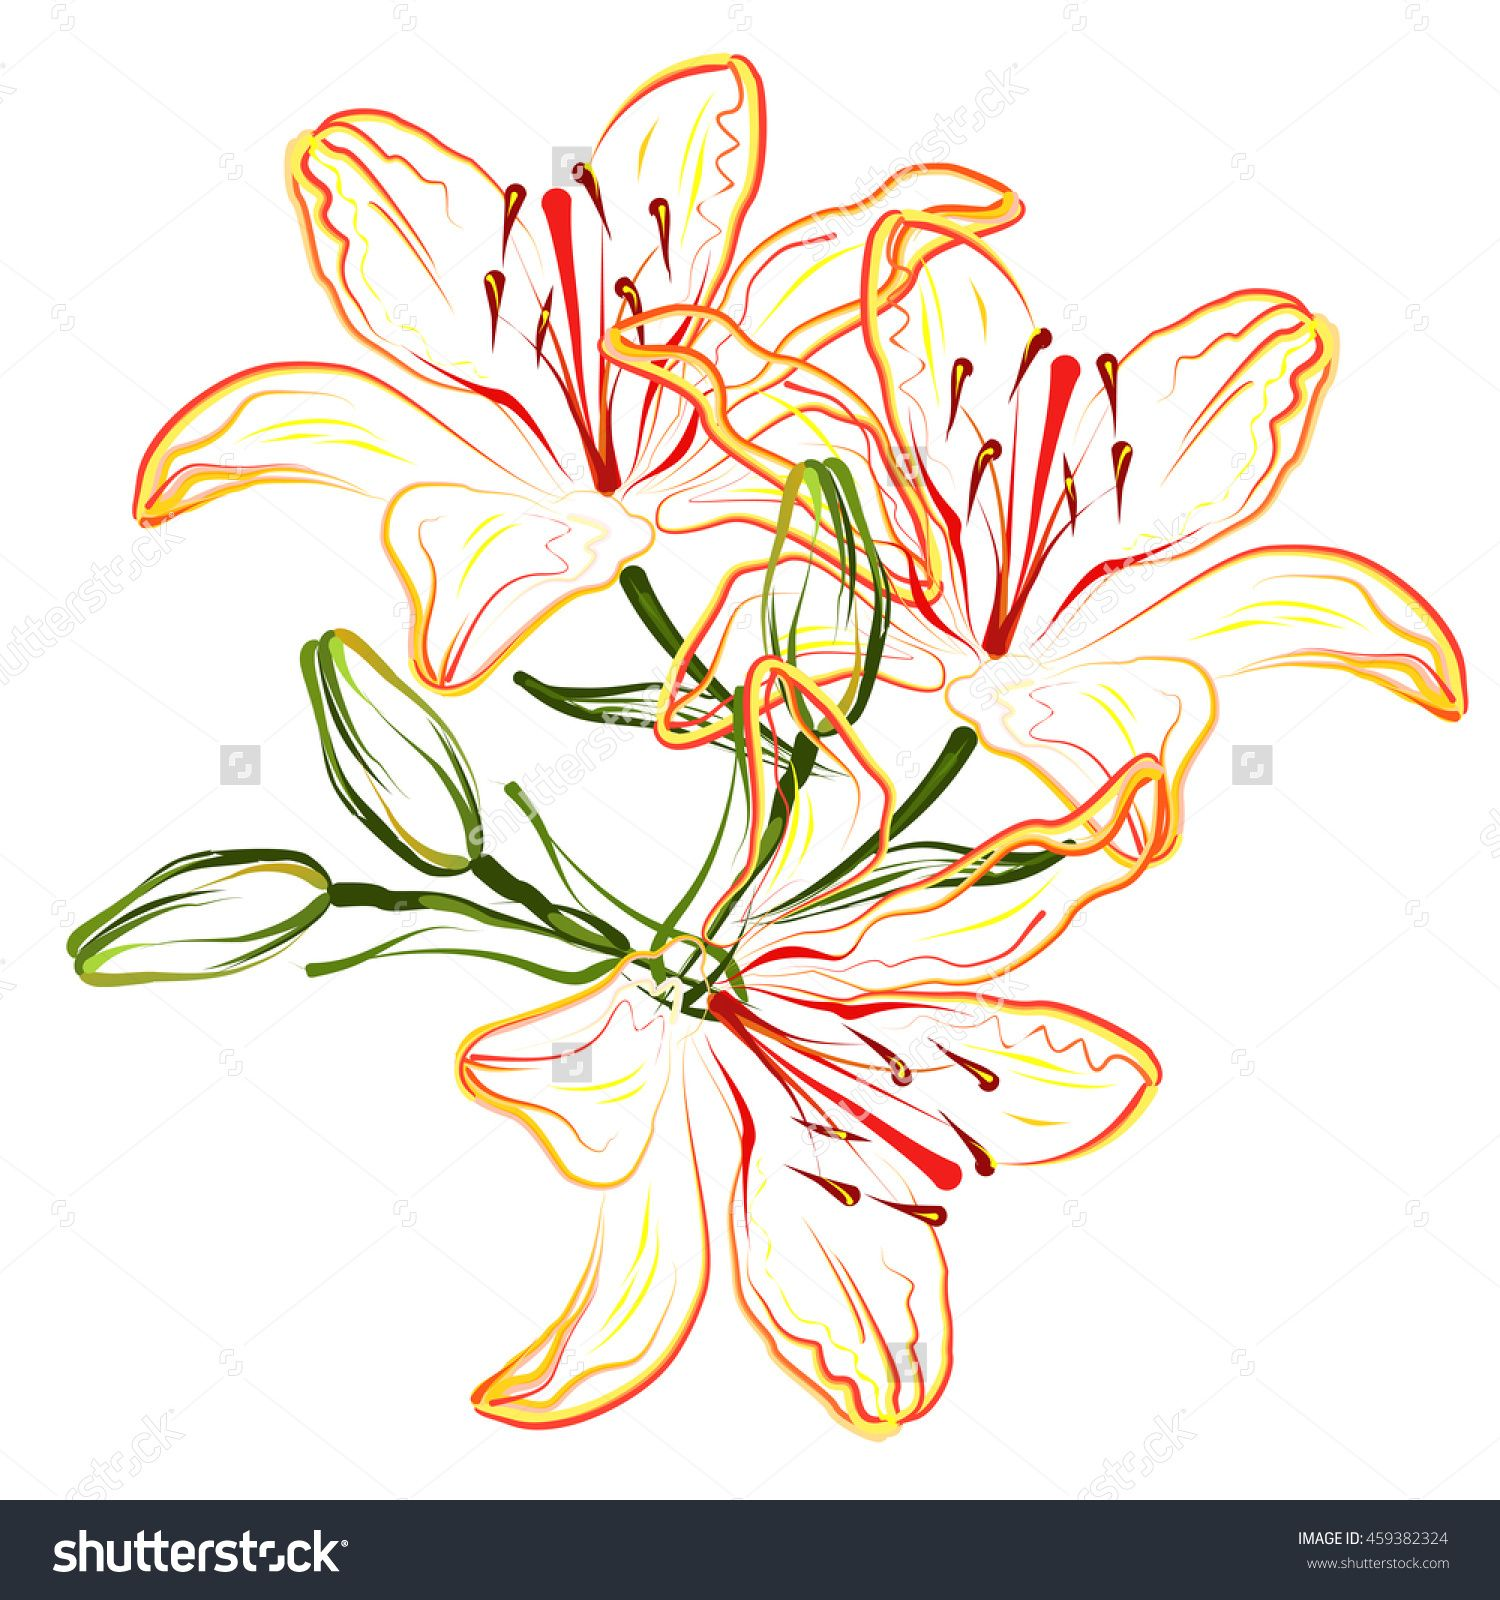 Orange lily. Hand drawn stylized color vector brush sketch